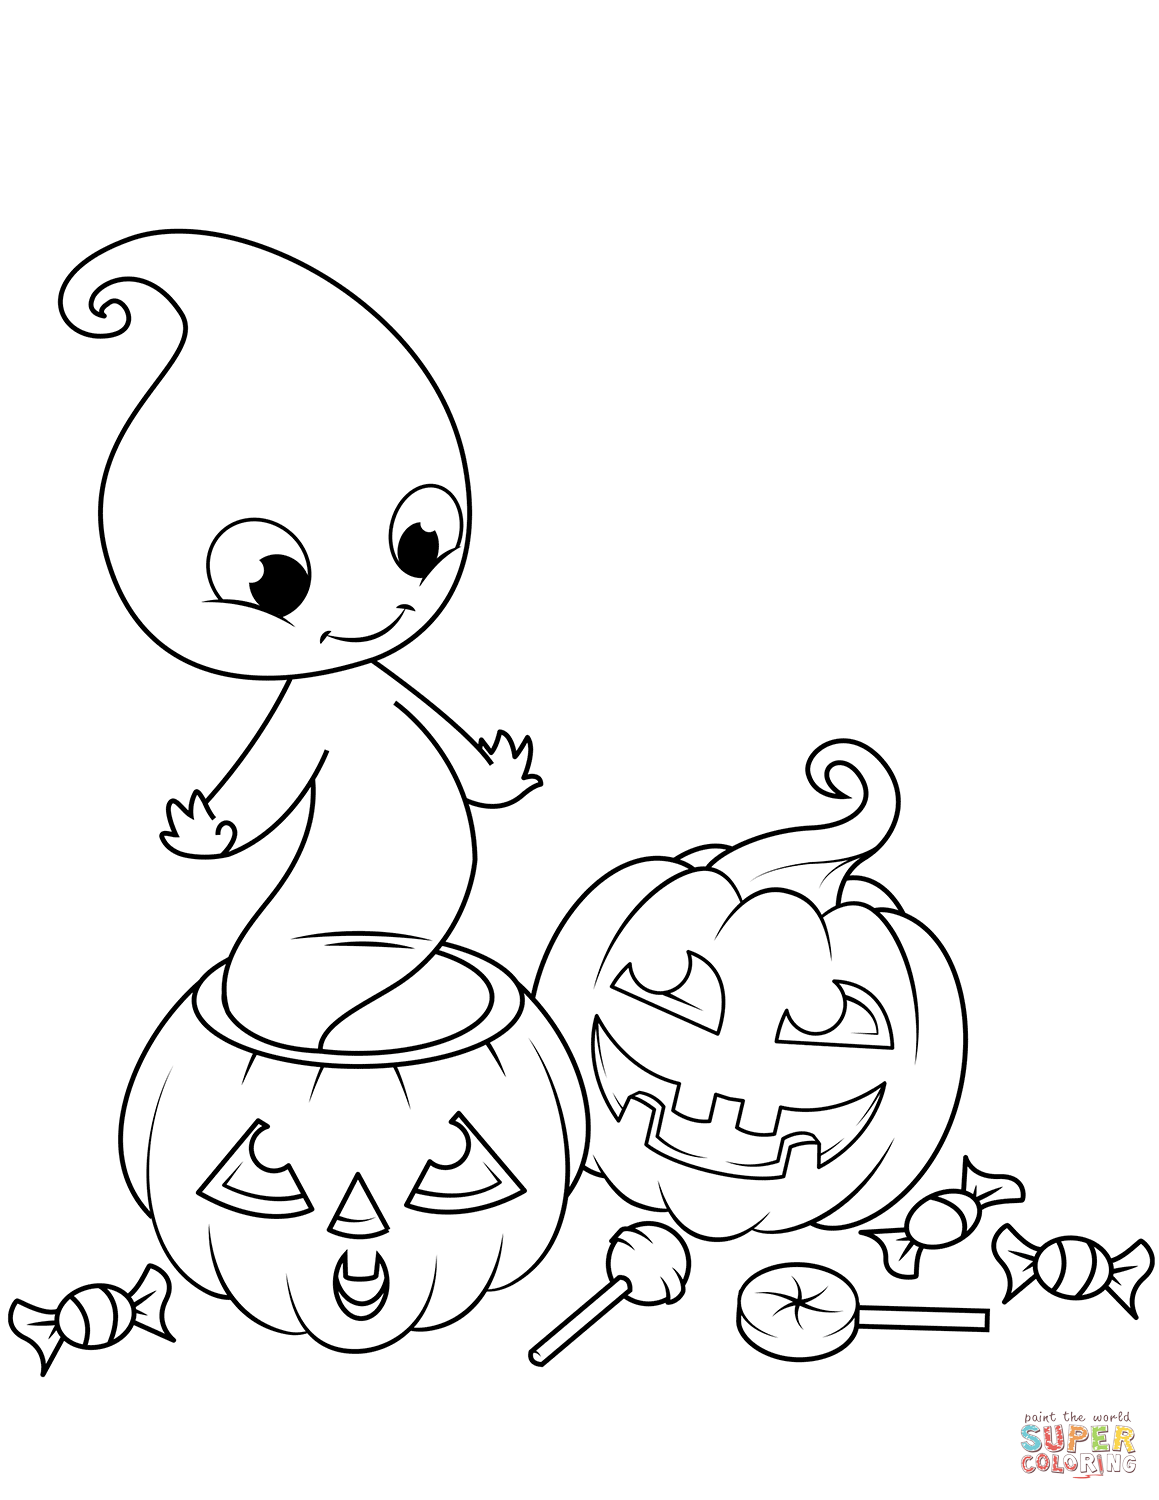 Cute Ghost From Jack O Lantern Super Coloring Halloween Coloring Pages Halloween Coloring Pages Printable Halloween Coloring